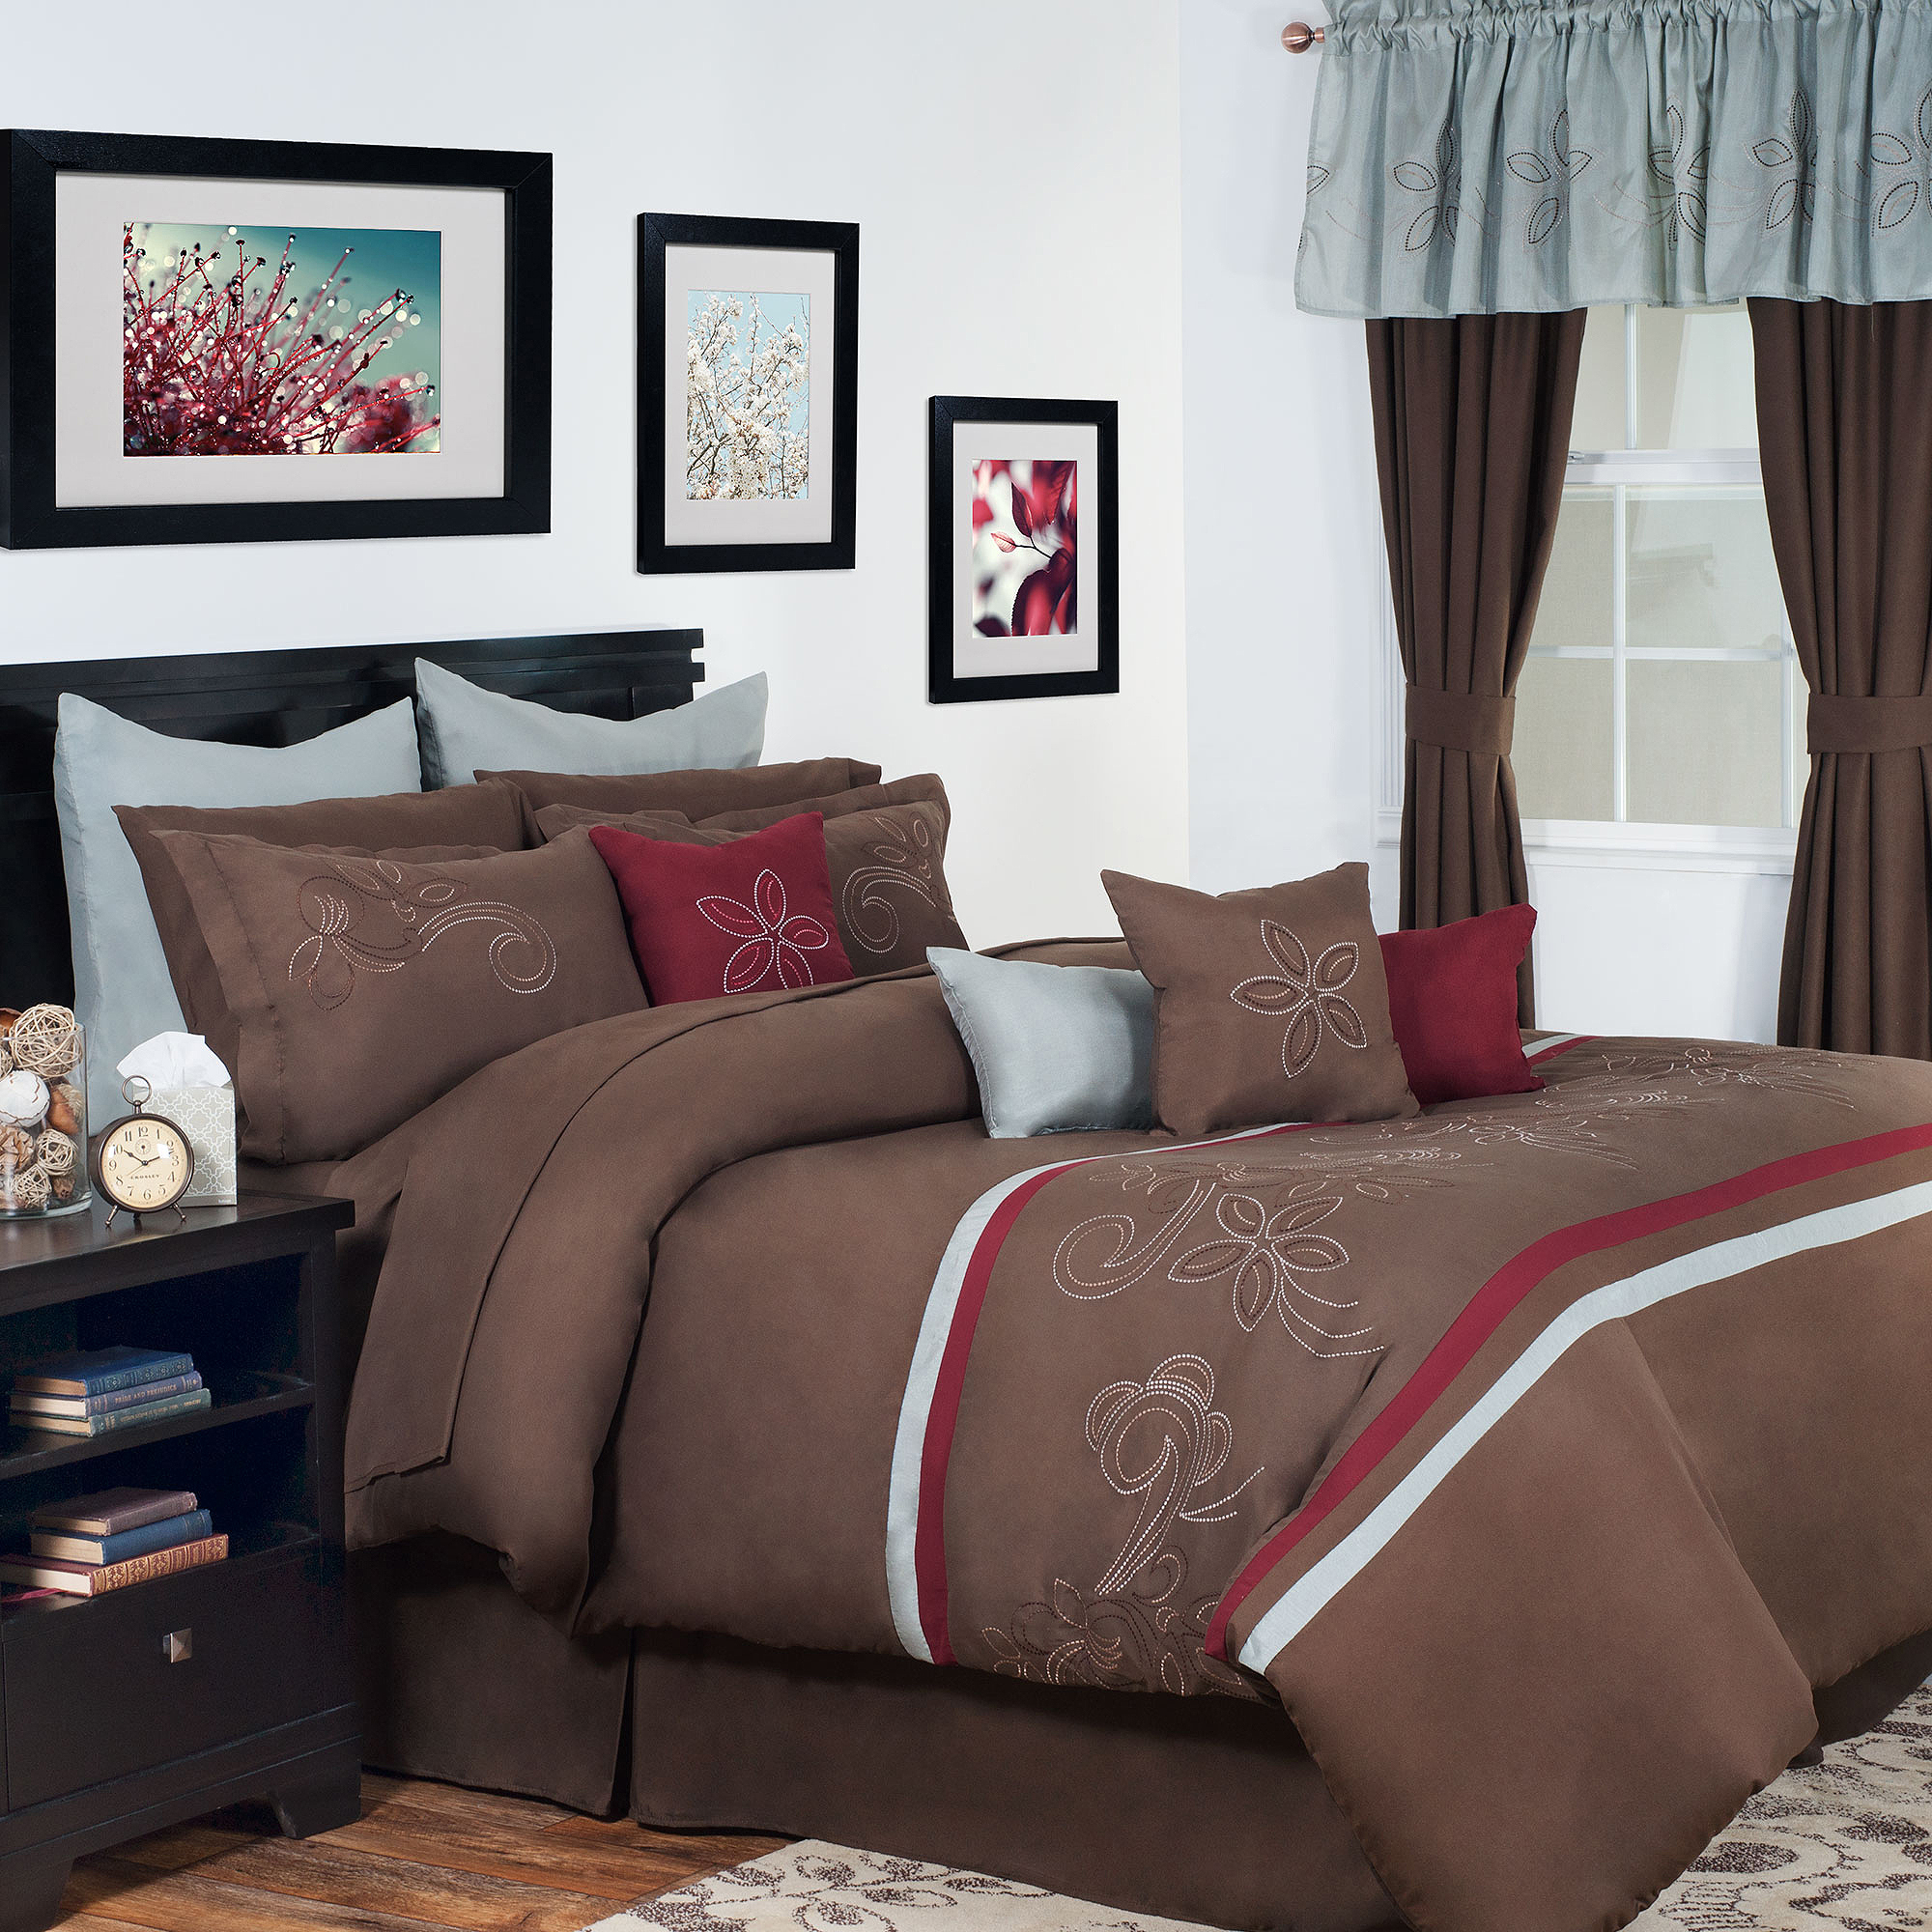 Somerset Home Briella Room-in-a Bag